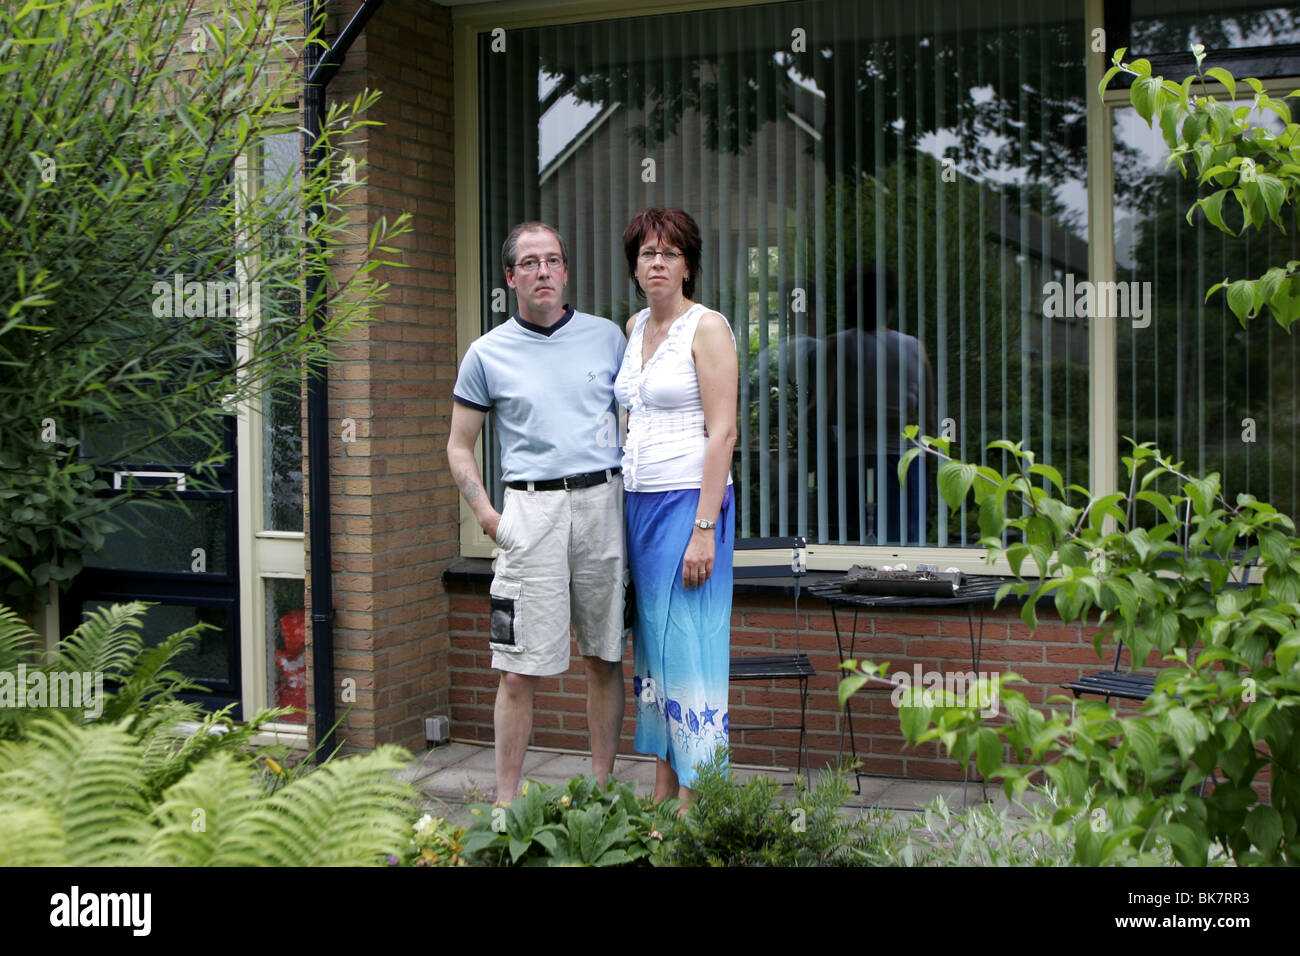 Couple in front of their house, married couple serious faces - Stock Image